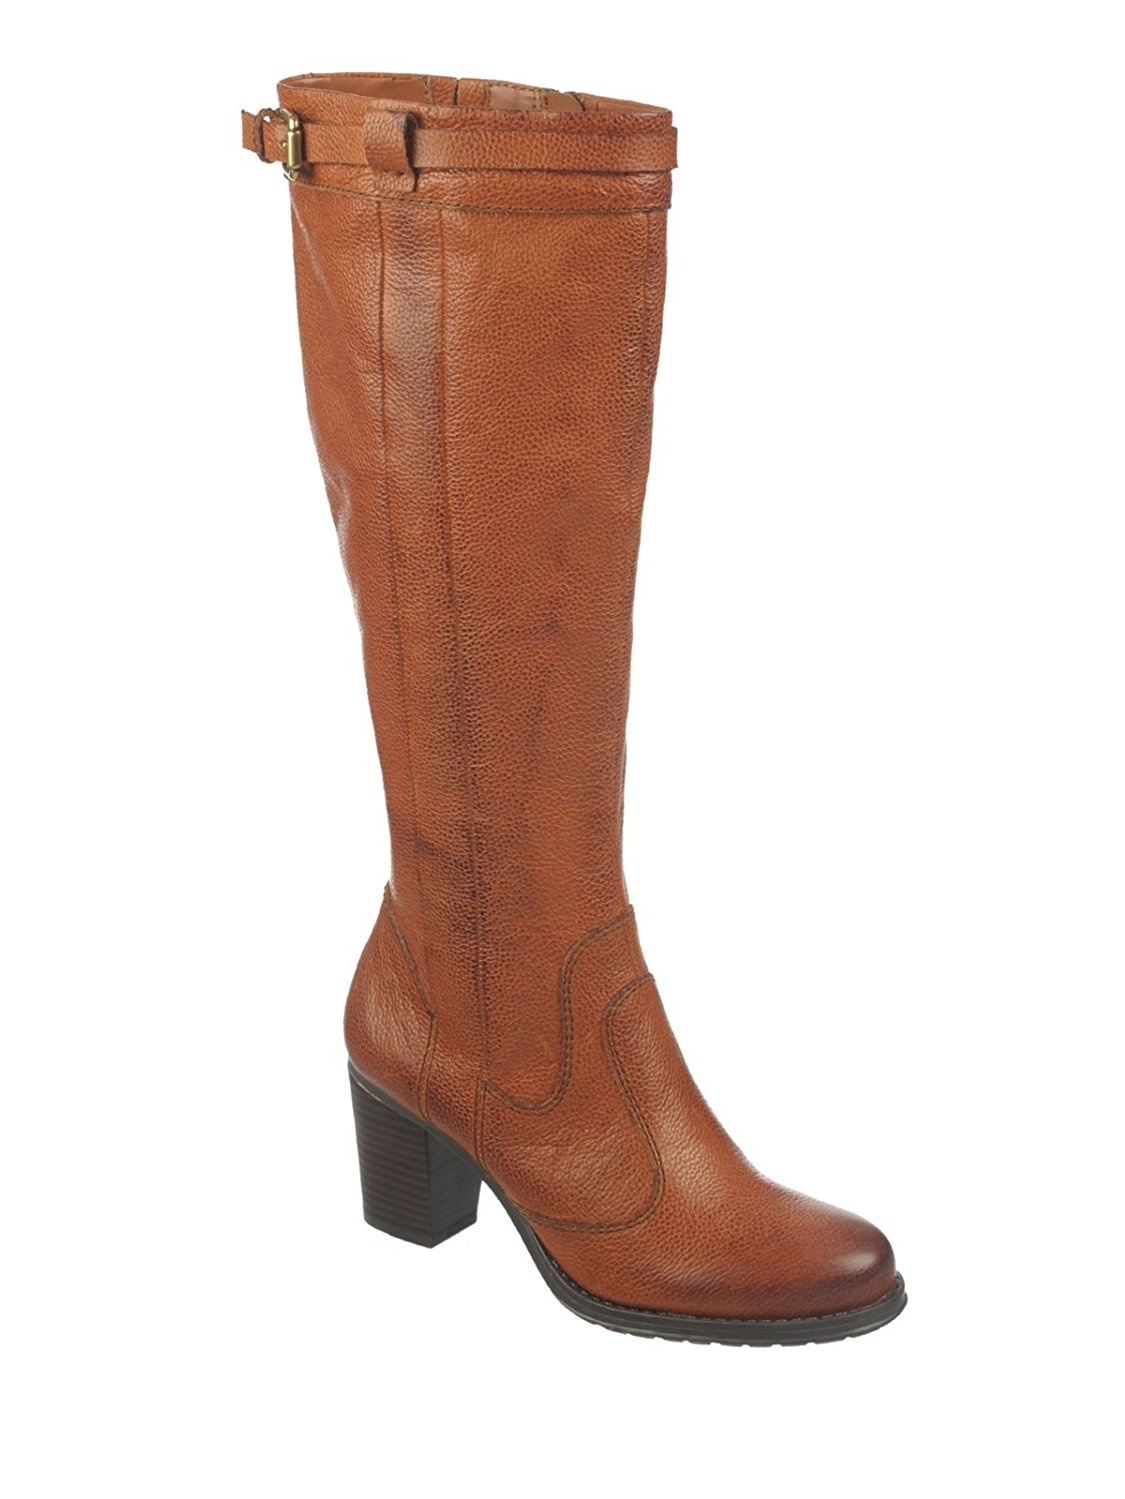 Click here to buy Naturalizer Damaris Women